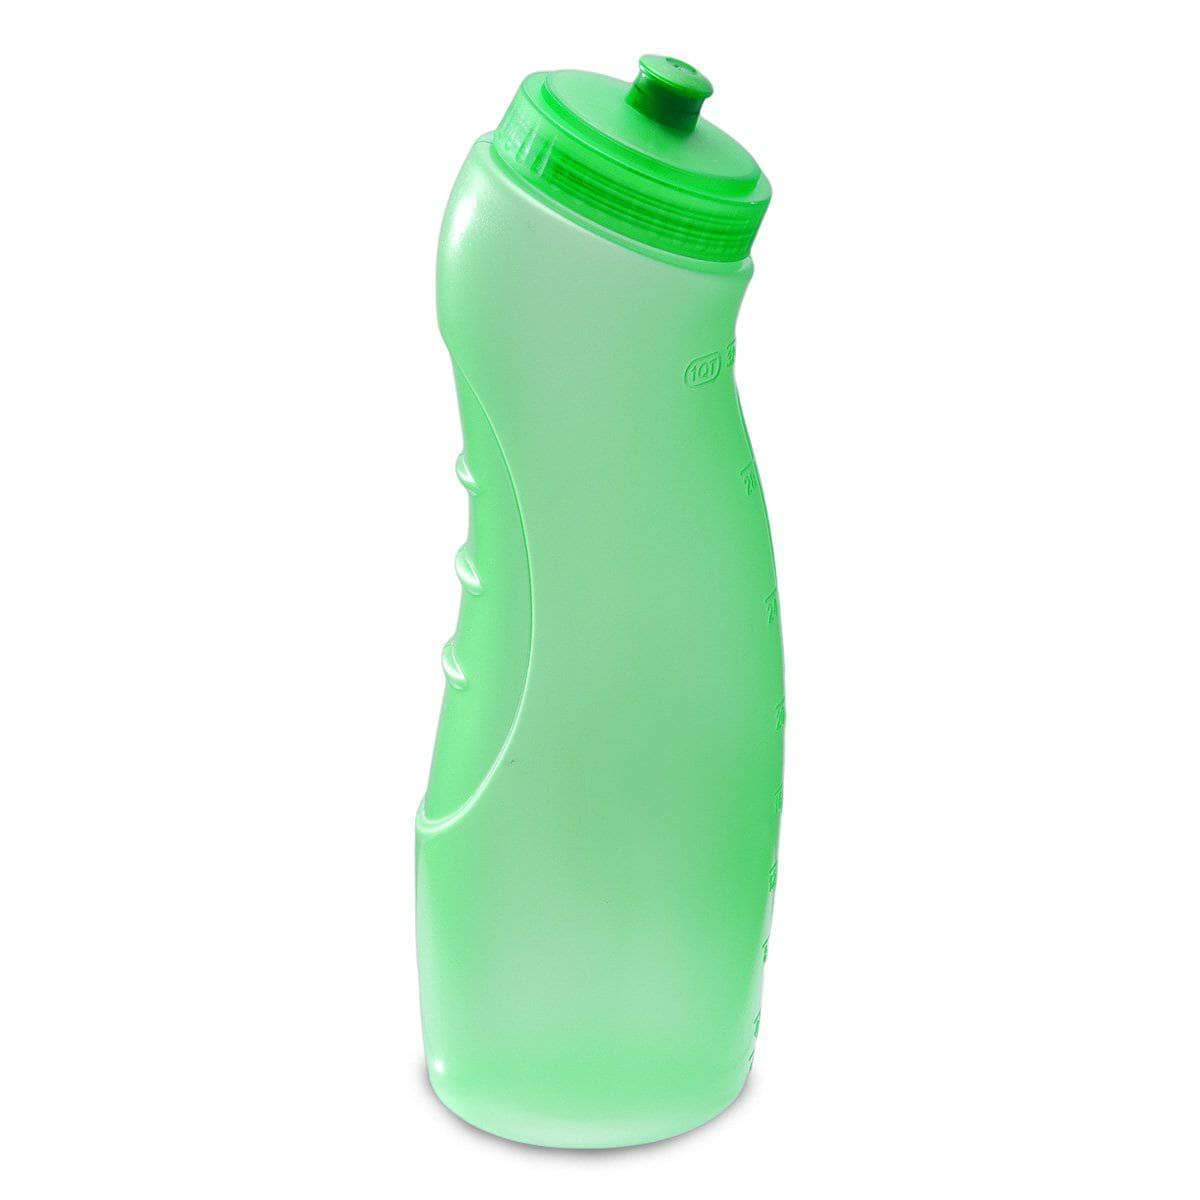 Geo Bottles Bottles Green 30oz BPA Free Cobra Body Sports Bottle